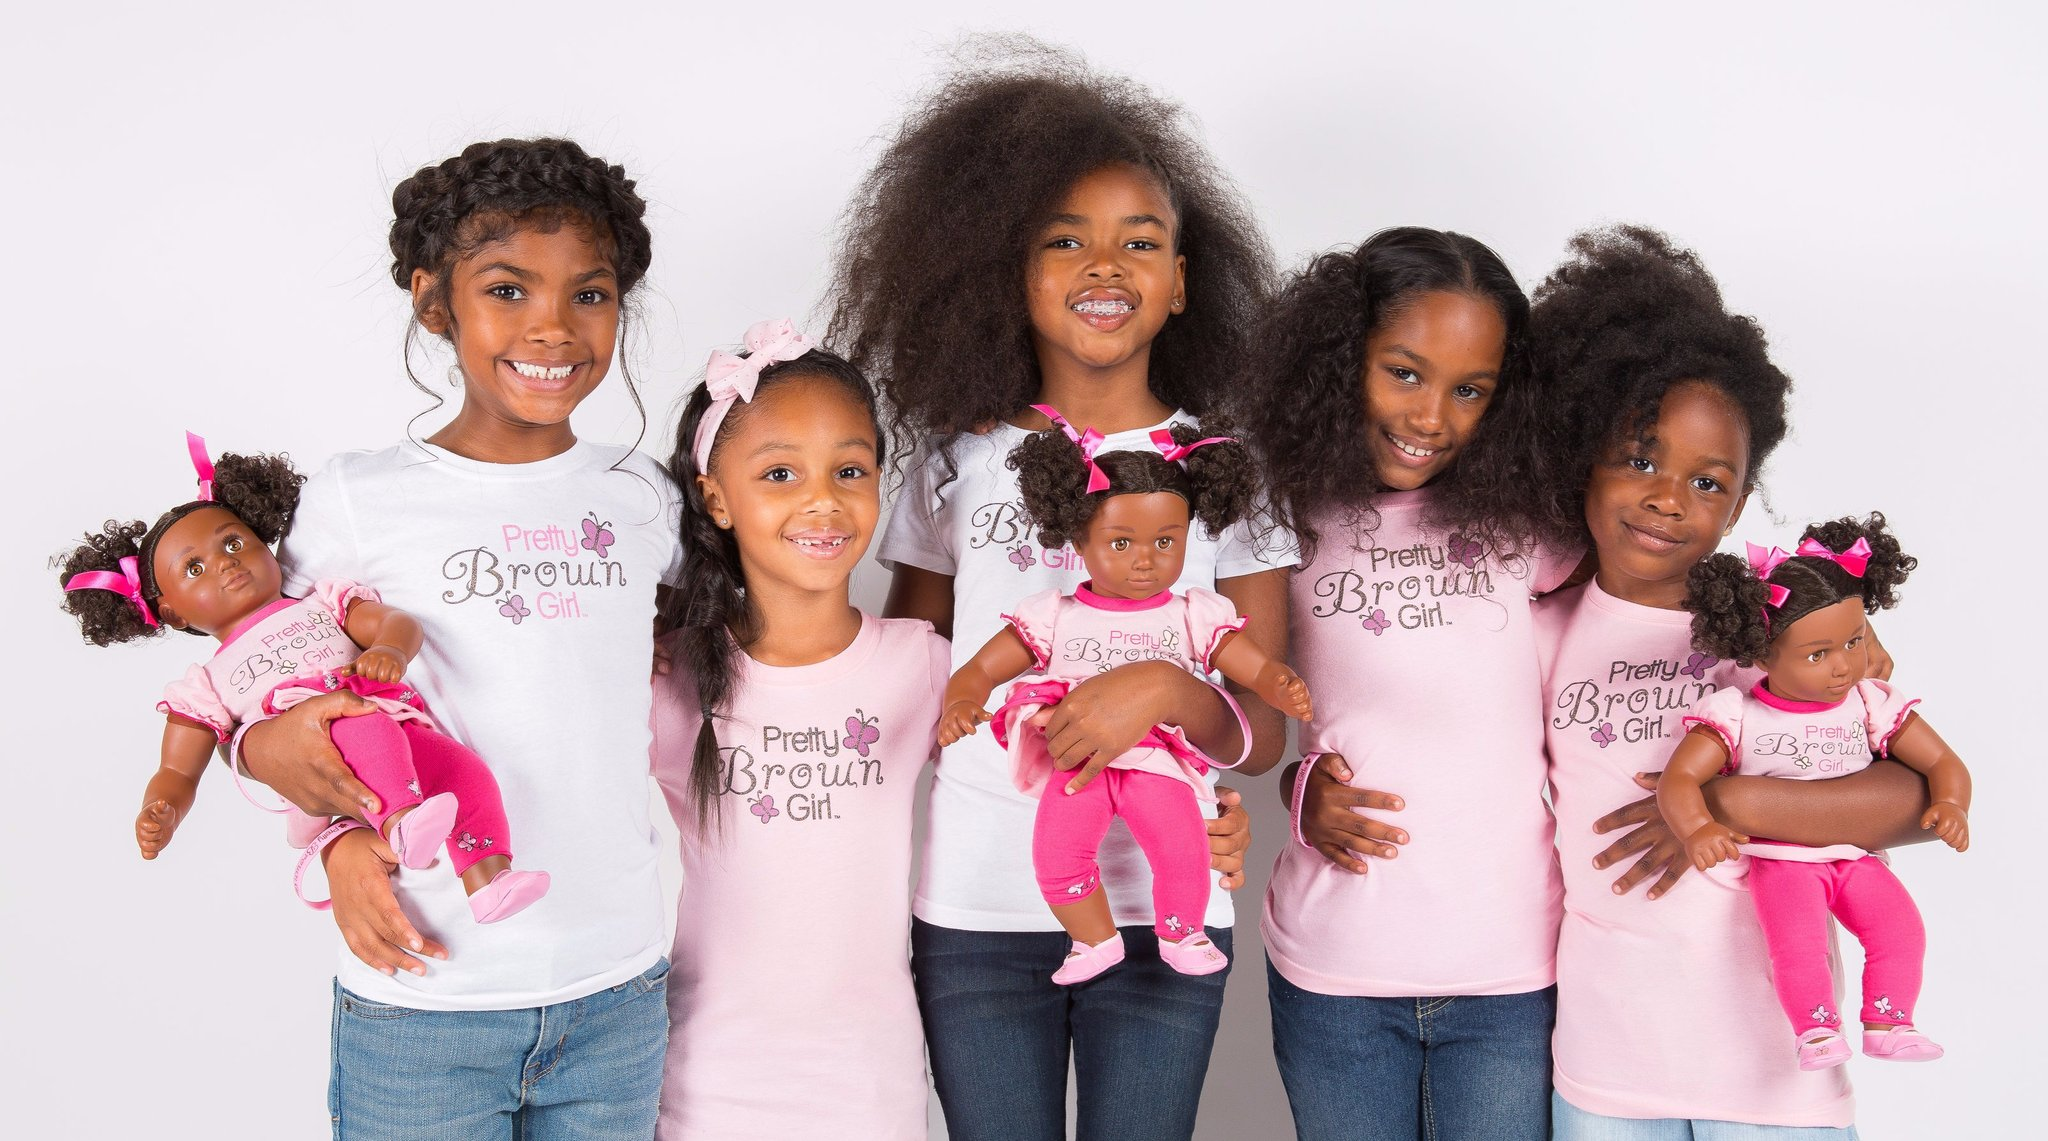 Did I hear you say PRETTY BROWN GIRLS ? YESSS! The babies can finally play with dolls that look just like them, Braid their beautiful kinky hair. More importantly, I love the brand's philosophy. I don't want to give it all away. Photo credit (Pretty Brown Girls) Please go check their page out  here.